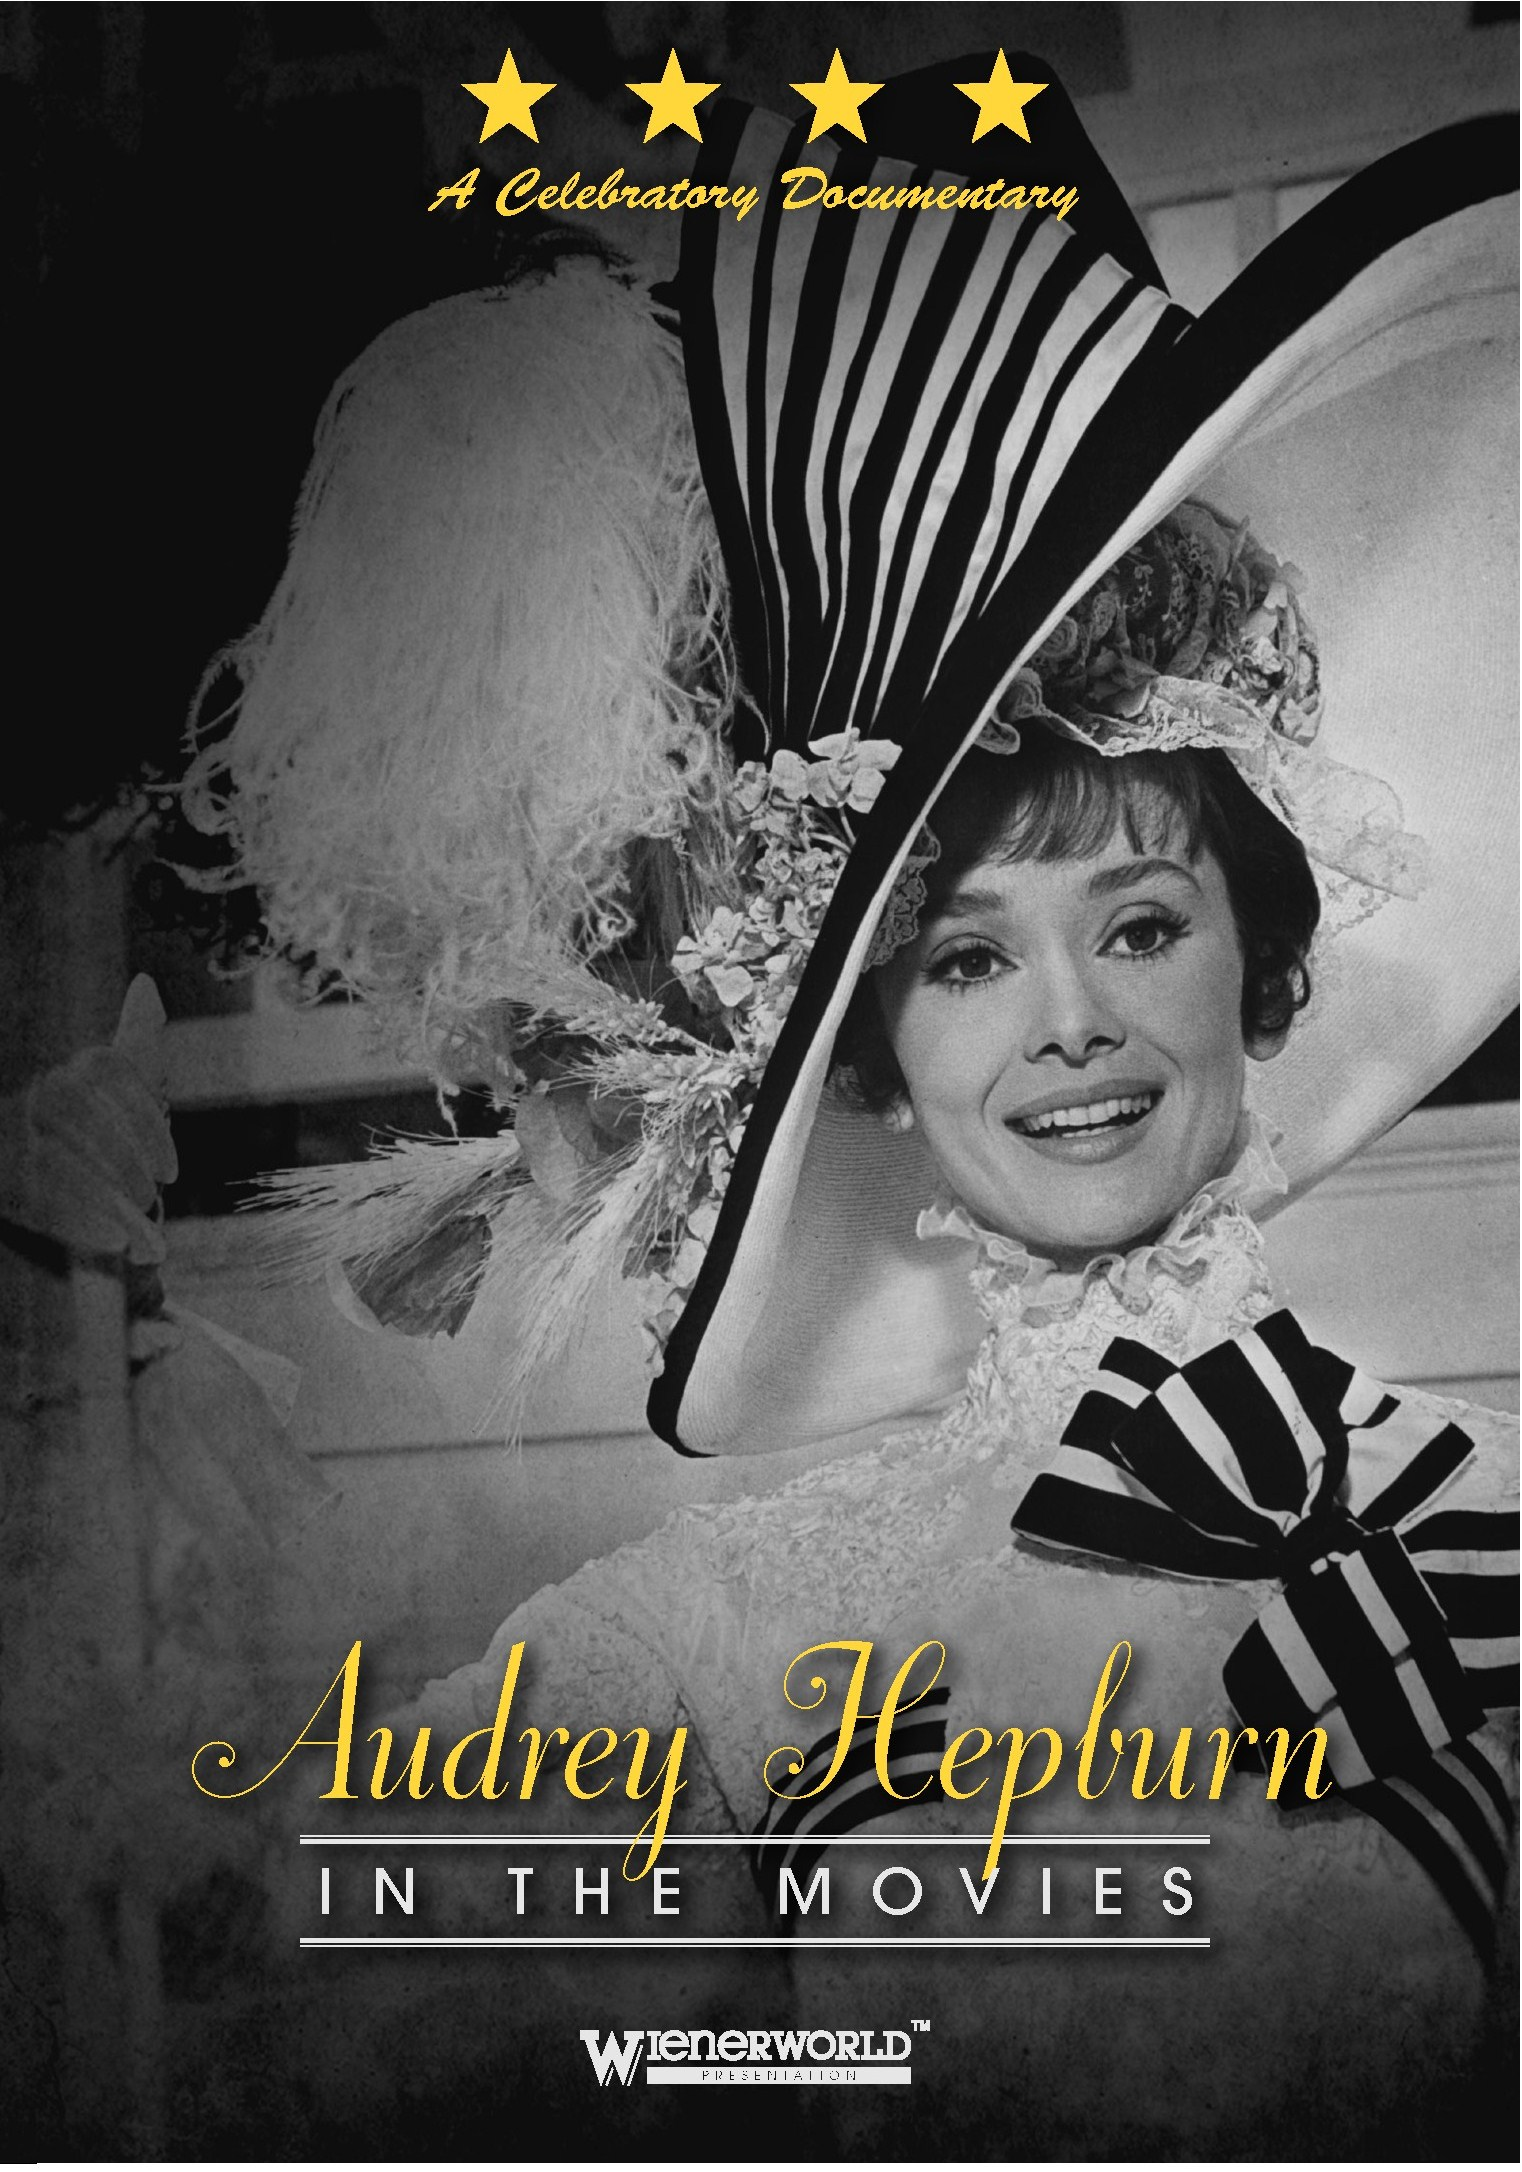 Audrey Hepburn In The Movies DVD cover